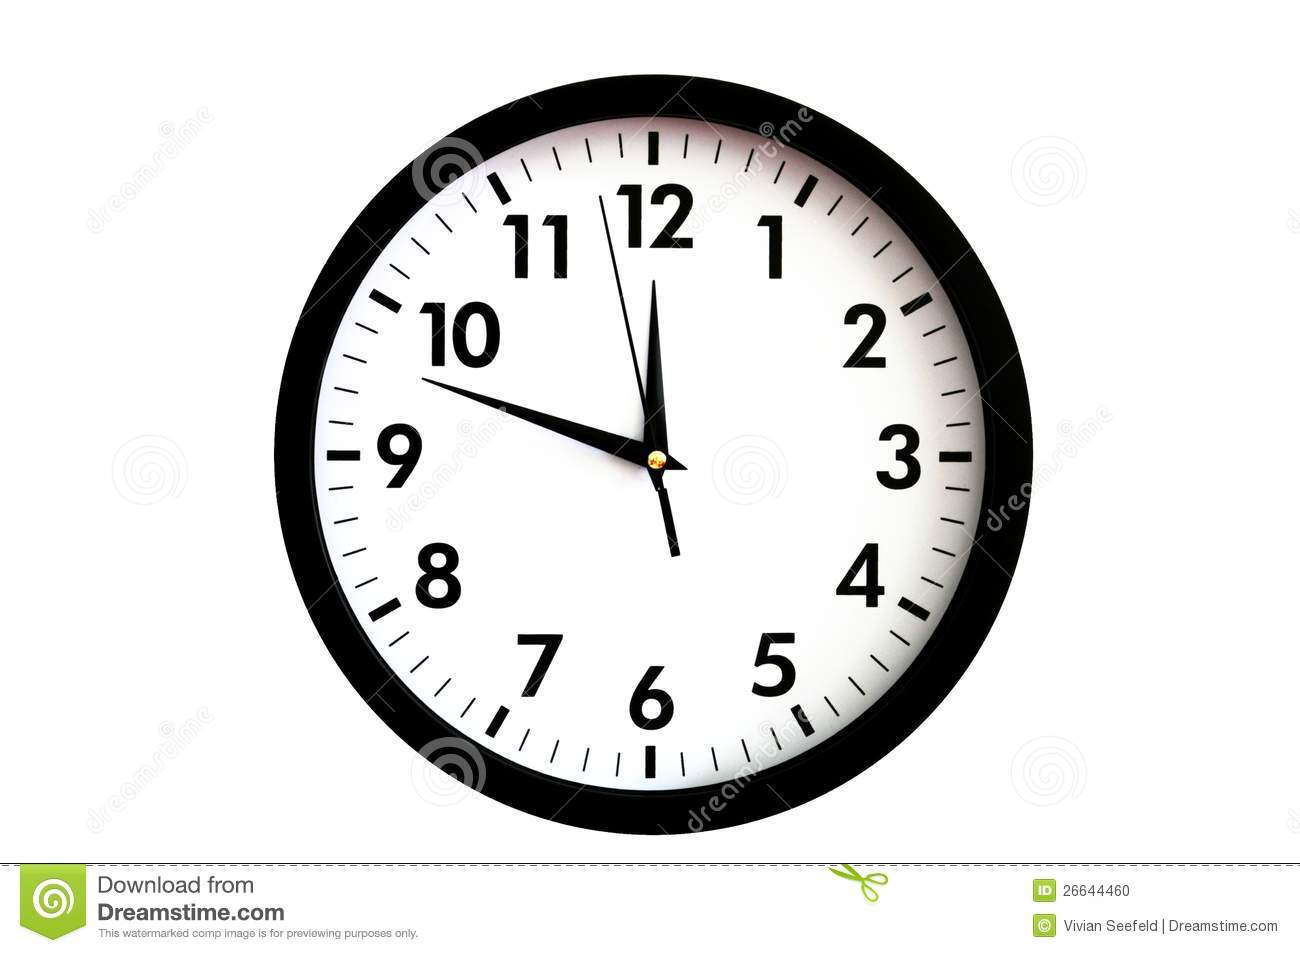 Clock face isolated on white background - time concept.